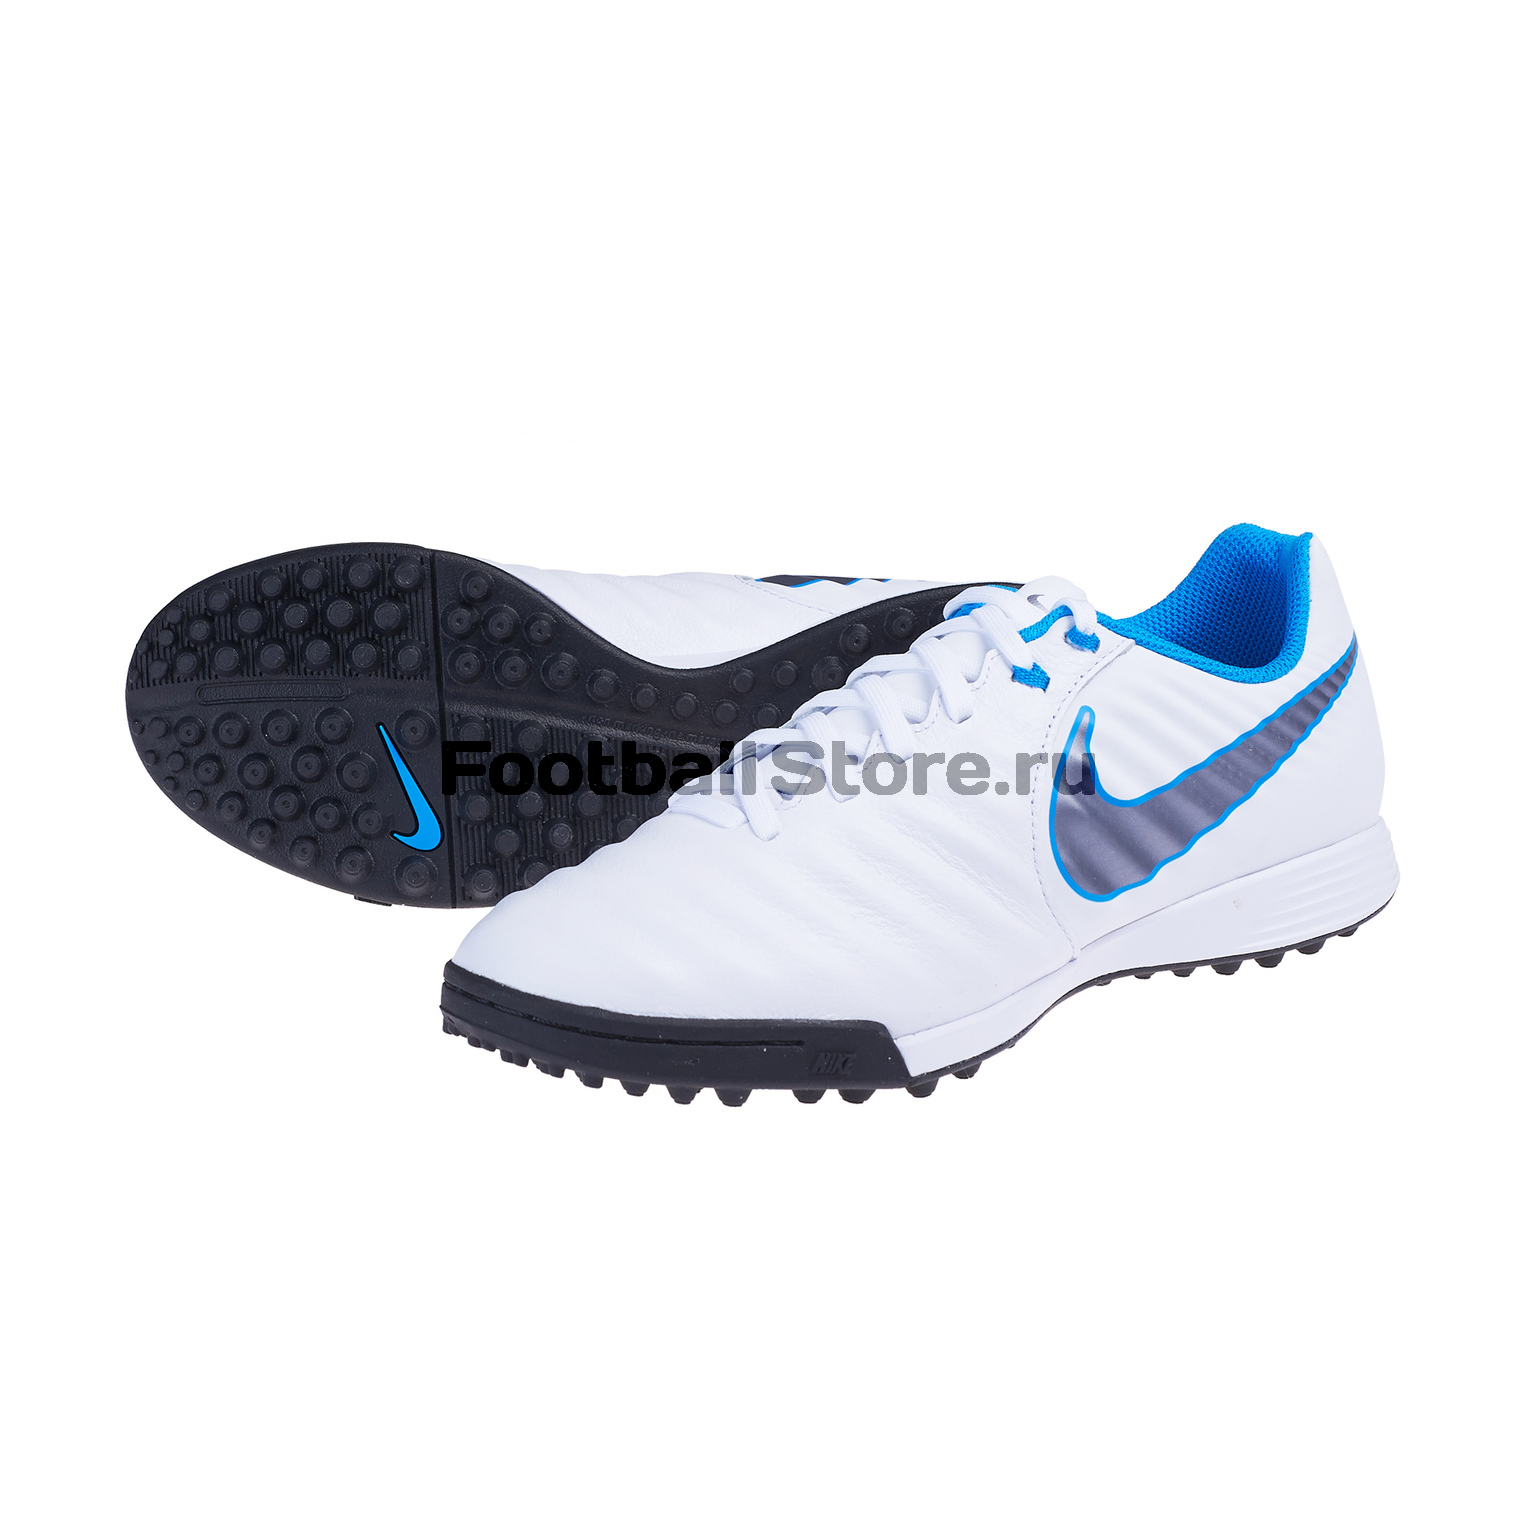 Шиповки Nike LegendX 7 Academy TF AH7243-107 шиповки nike legendx 7 club tf ah7248 107